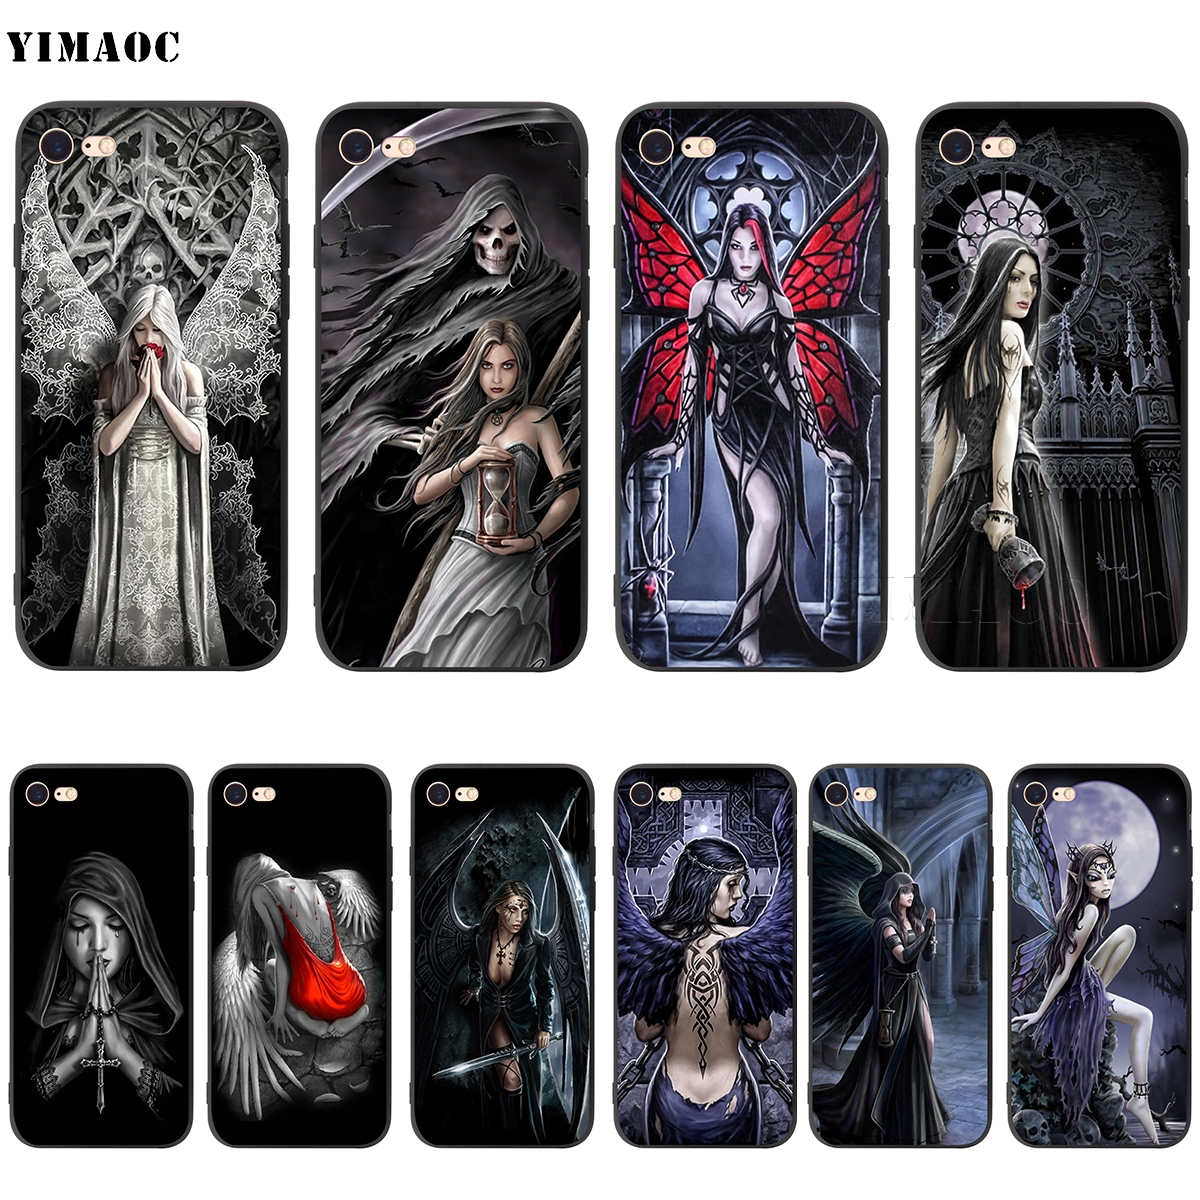 YIMAOC Anne Stokes Gothic Soft Silicone Case for iPhone 5 5s SE 6 6s 7 8 Plus X